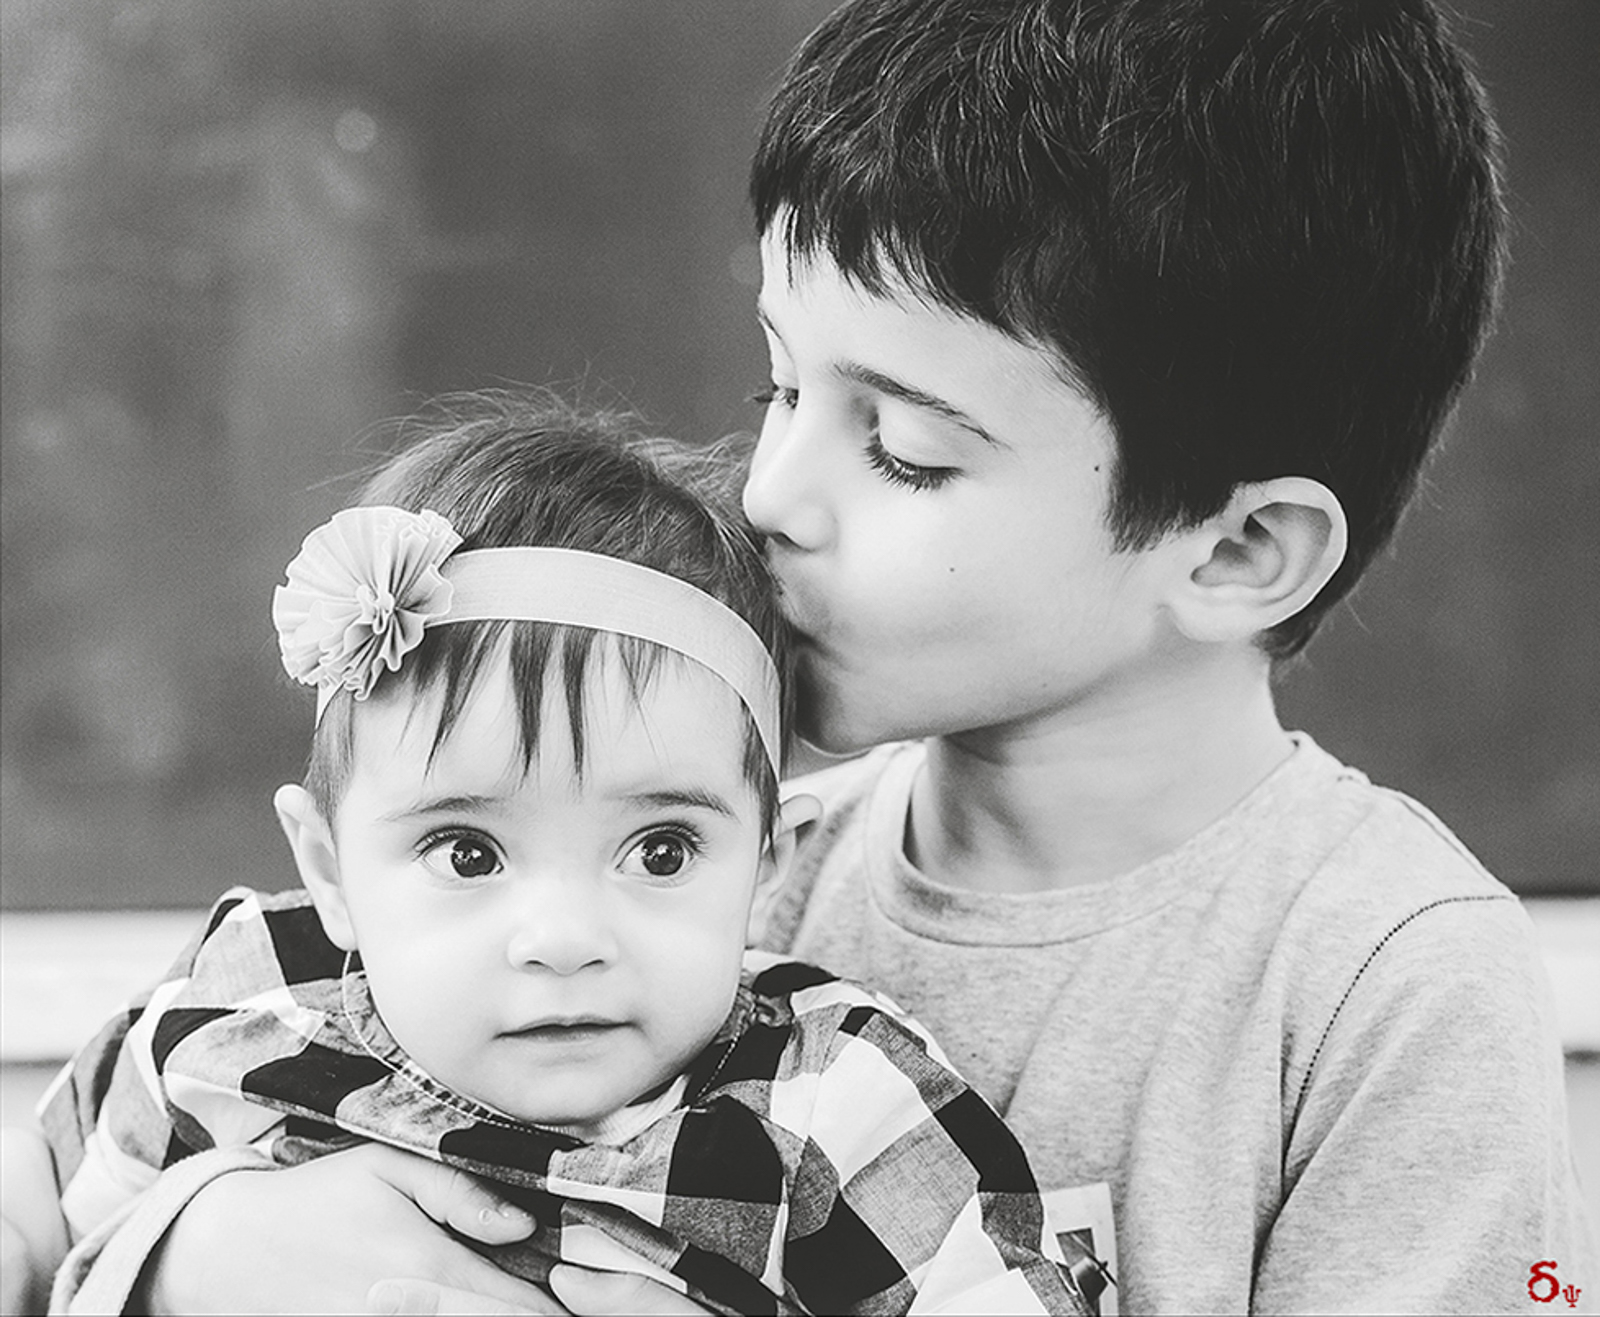 brother and sister love kiss hug christening day  family portraits baby portraiture black and white